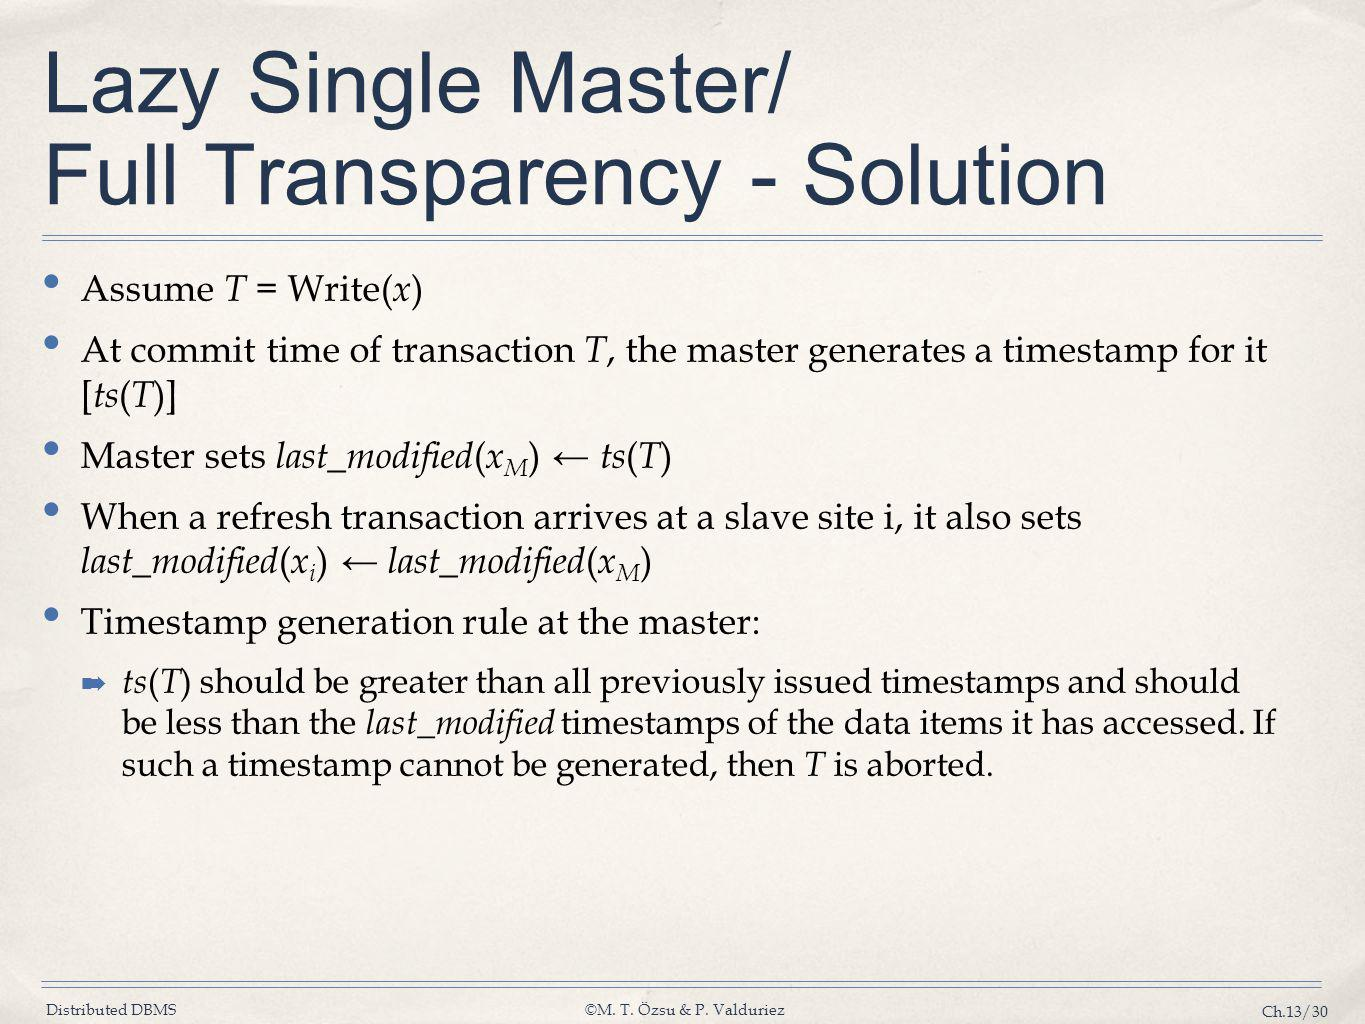 Lazy Single Master/ Full Transparency - Solution